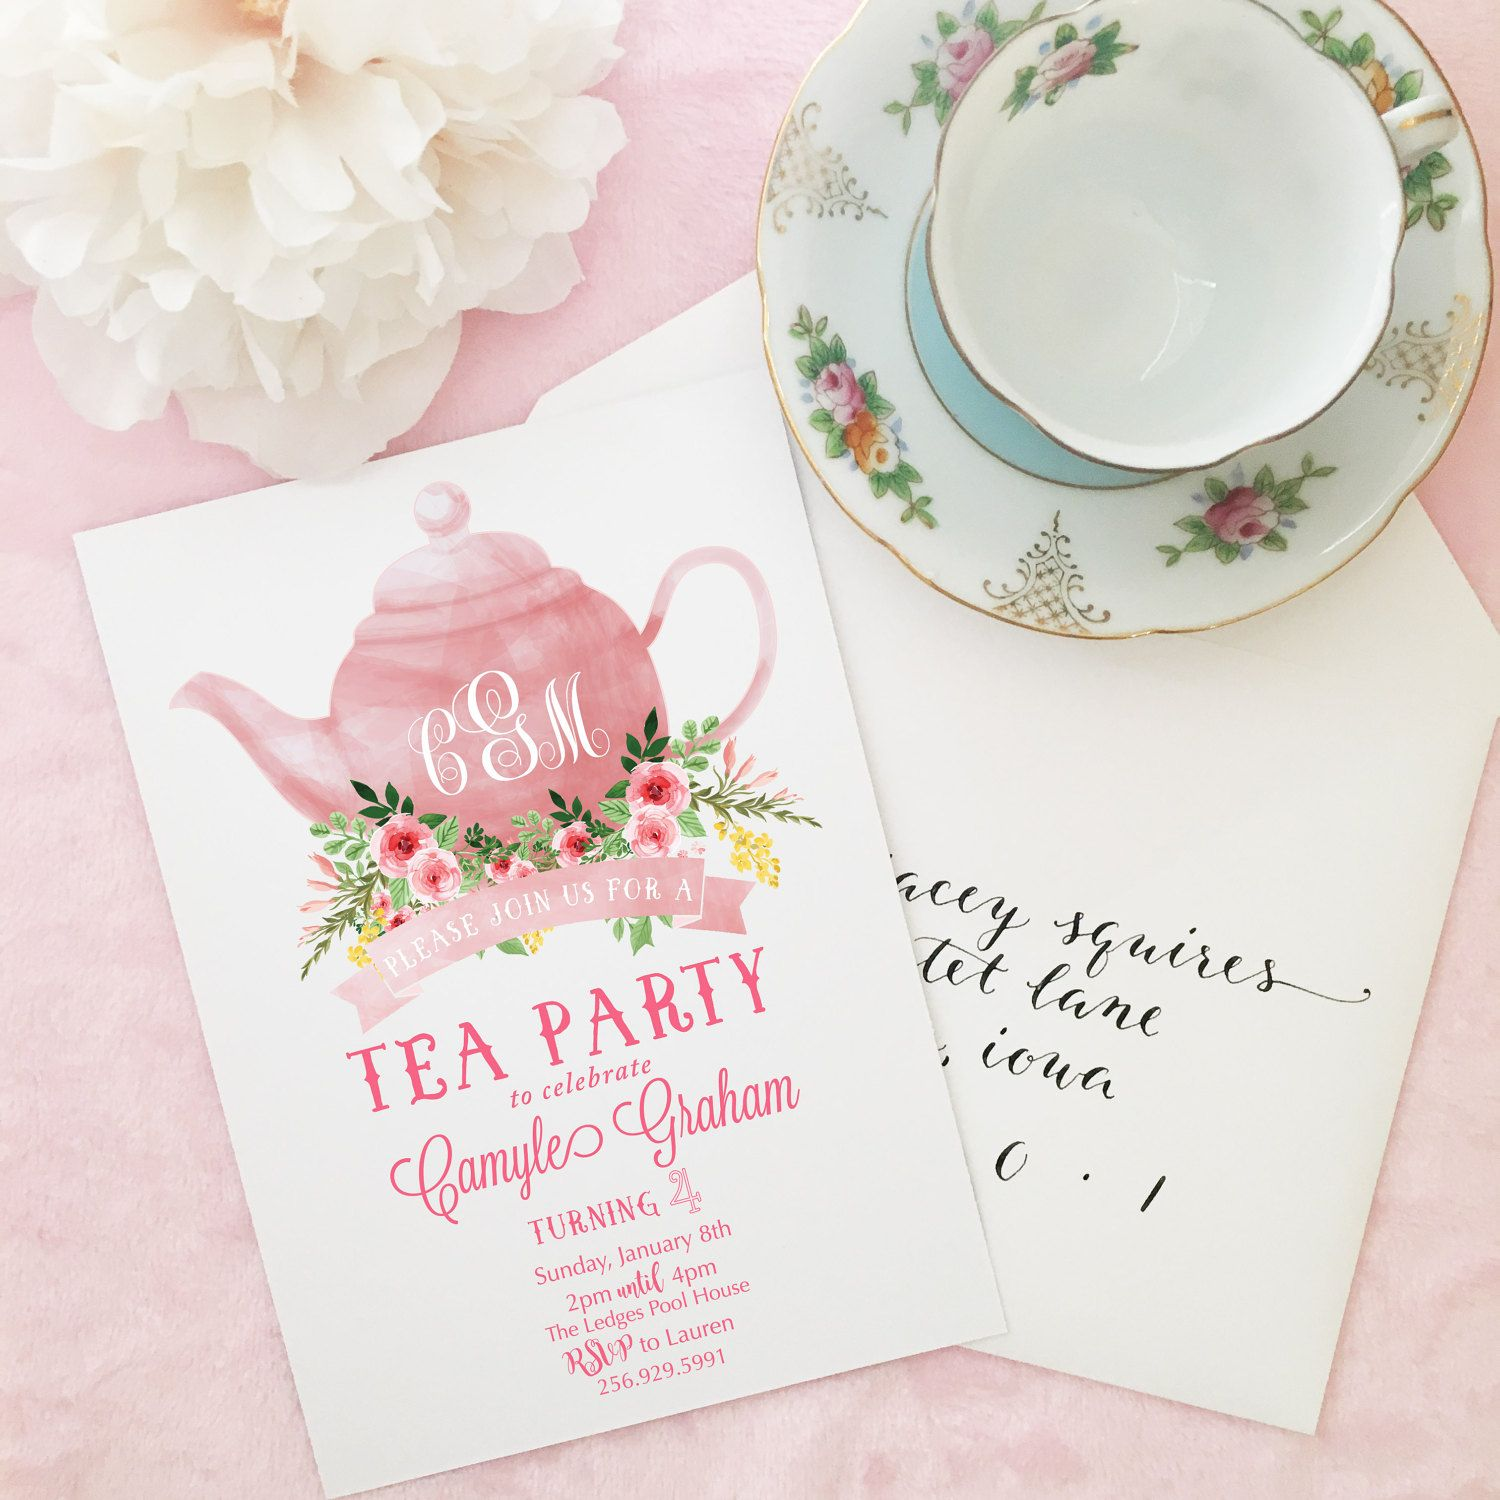 Time for Tea Birthday Party Bridal Tea Tea Party Invitation